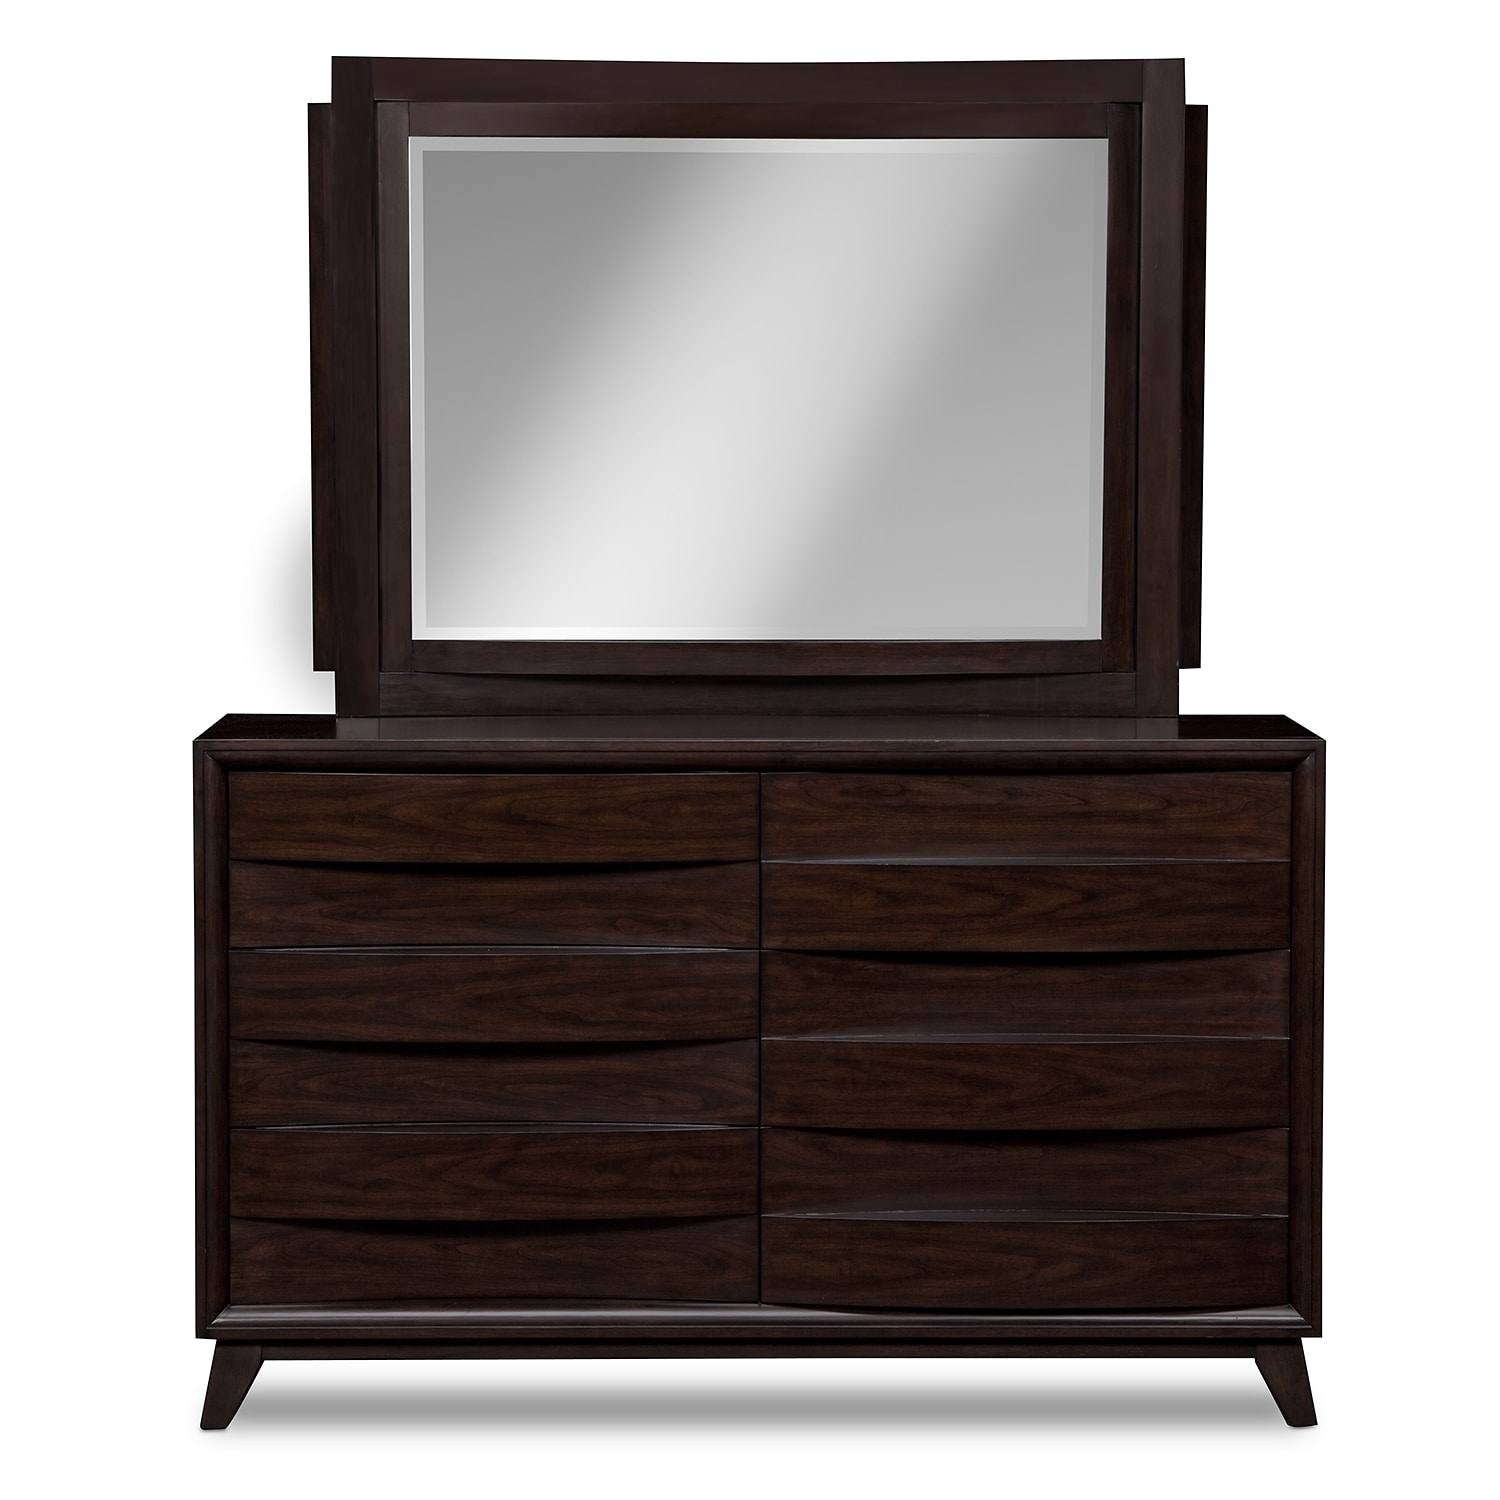 bedroom mirrored furniture dresser bedroom furniture dresser with mirrors aspera 10 executive office nappa leather brown